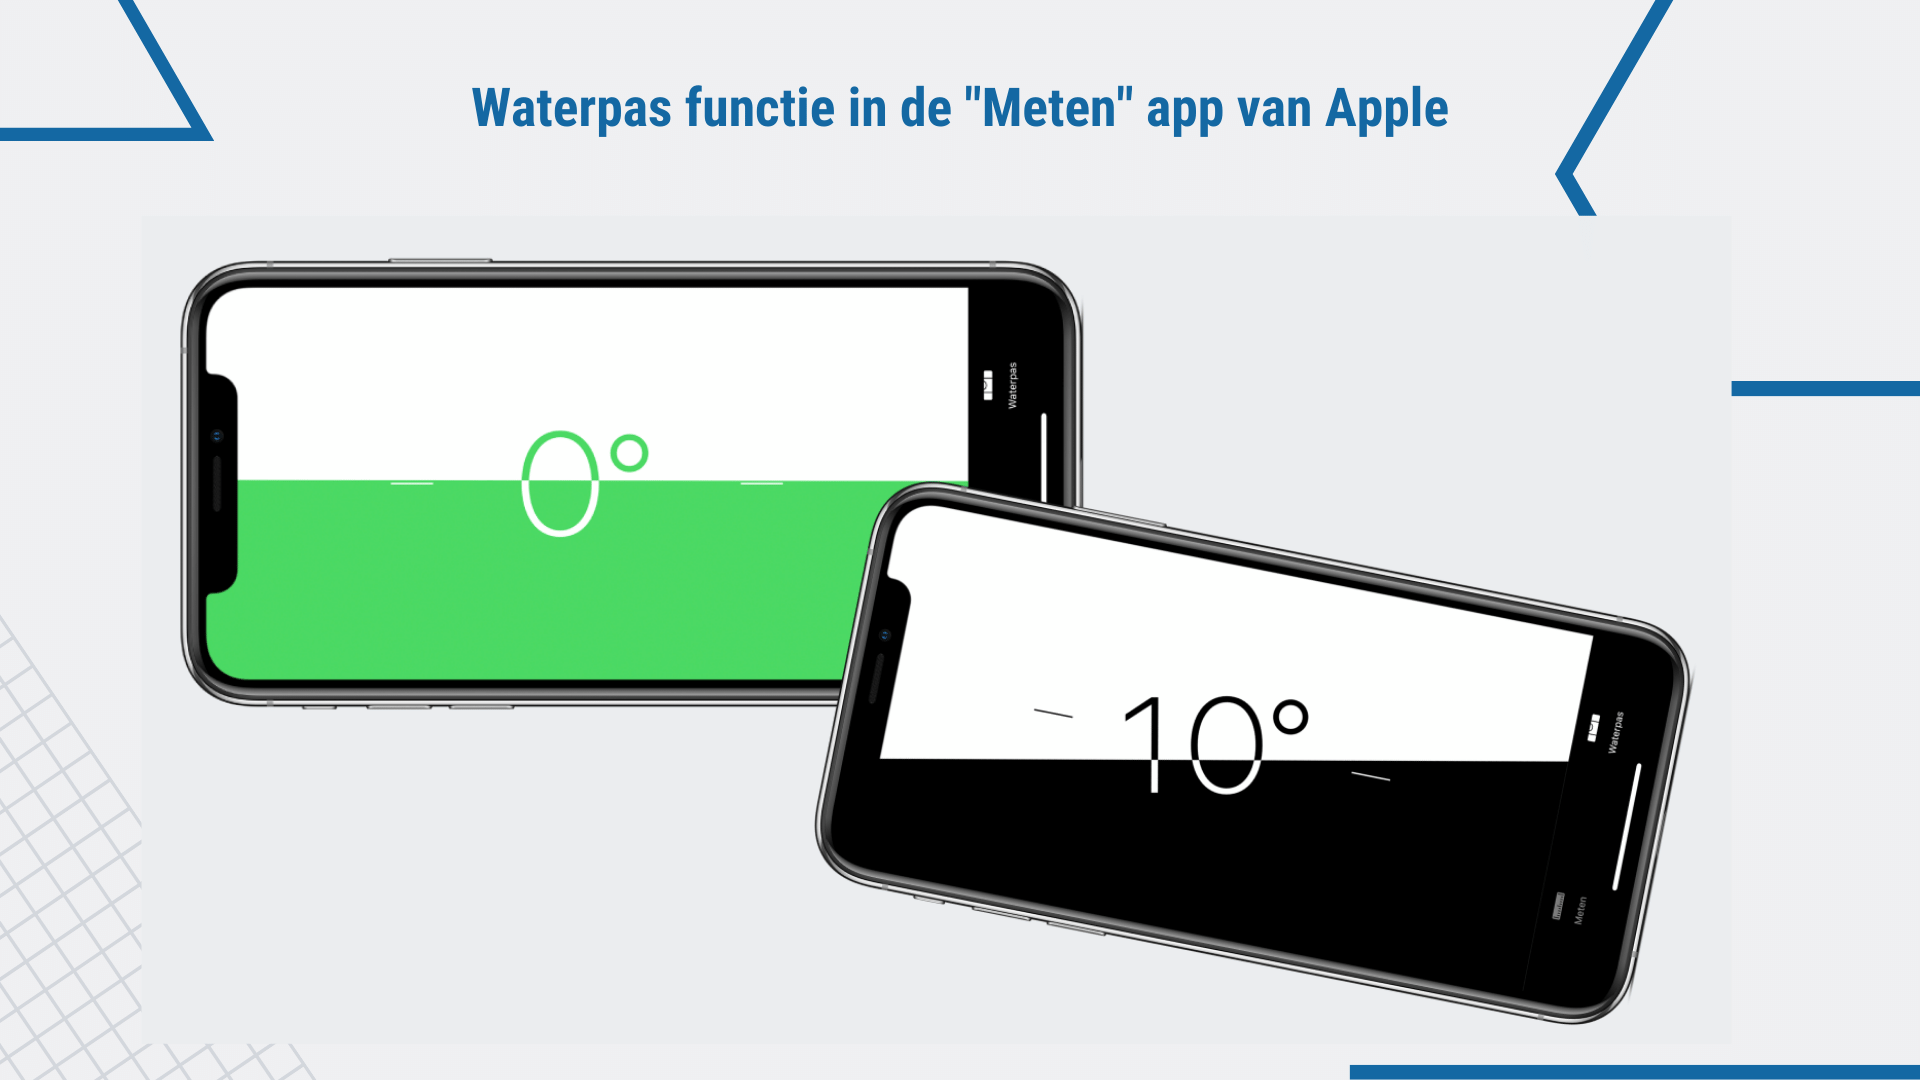 Waterpas functie in Apple Meten app | ArchiSnapper